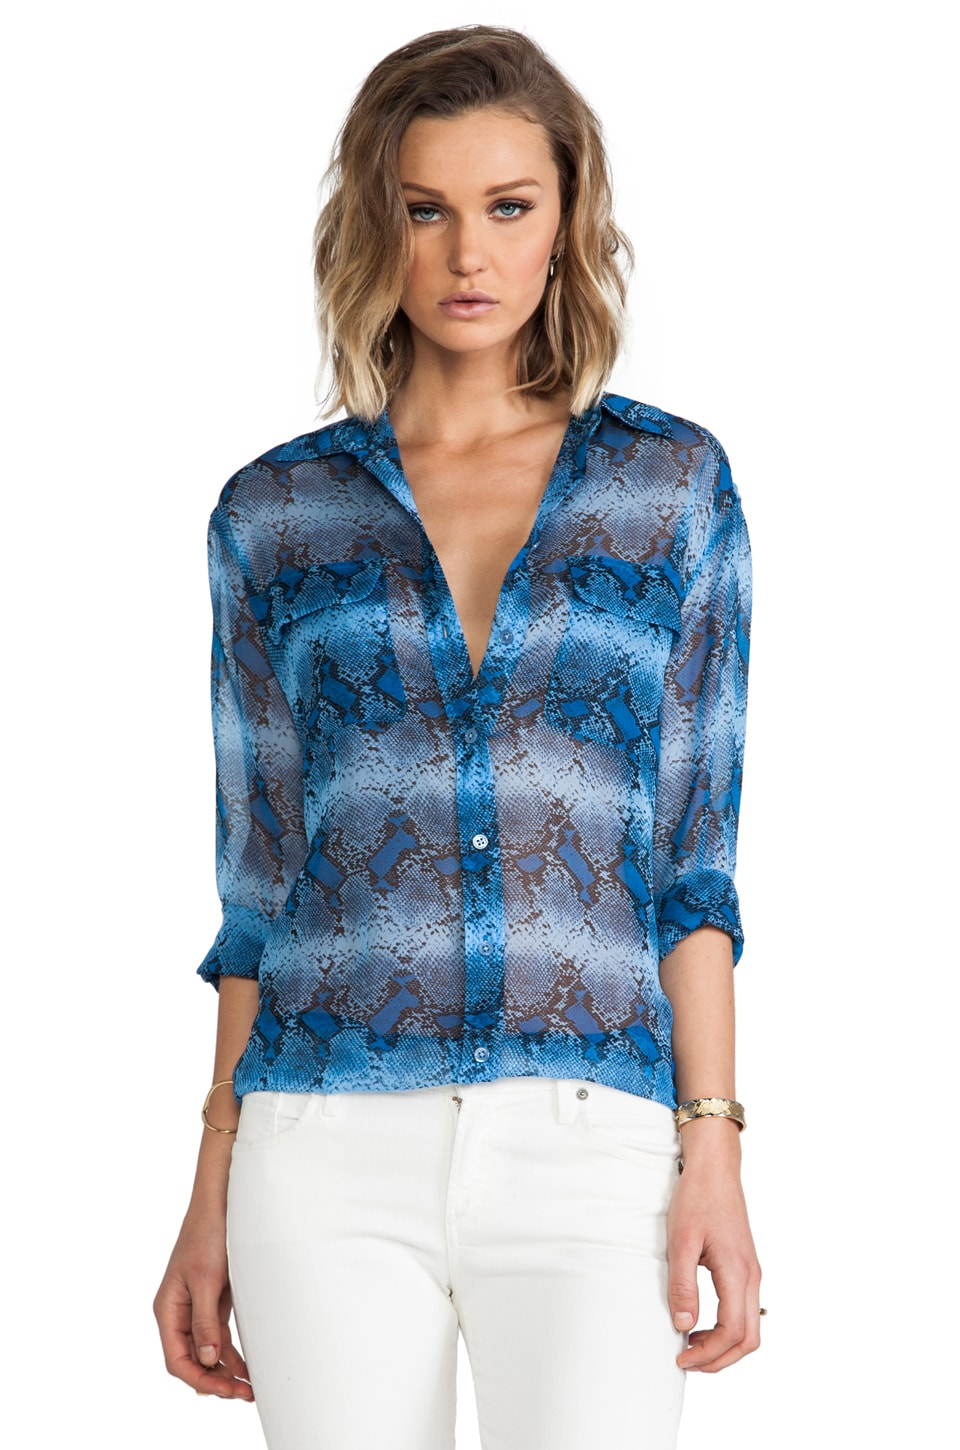 Equipment Diamondback Stripe Printed Signature Blouse in Parisian Blue